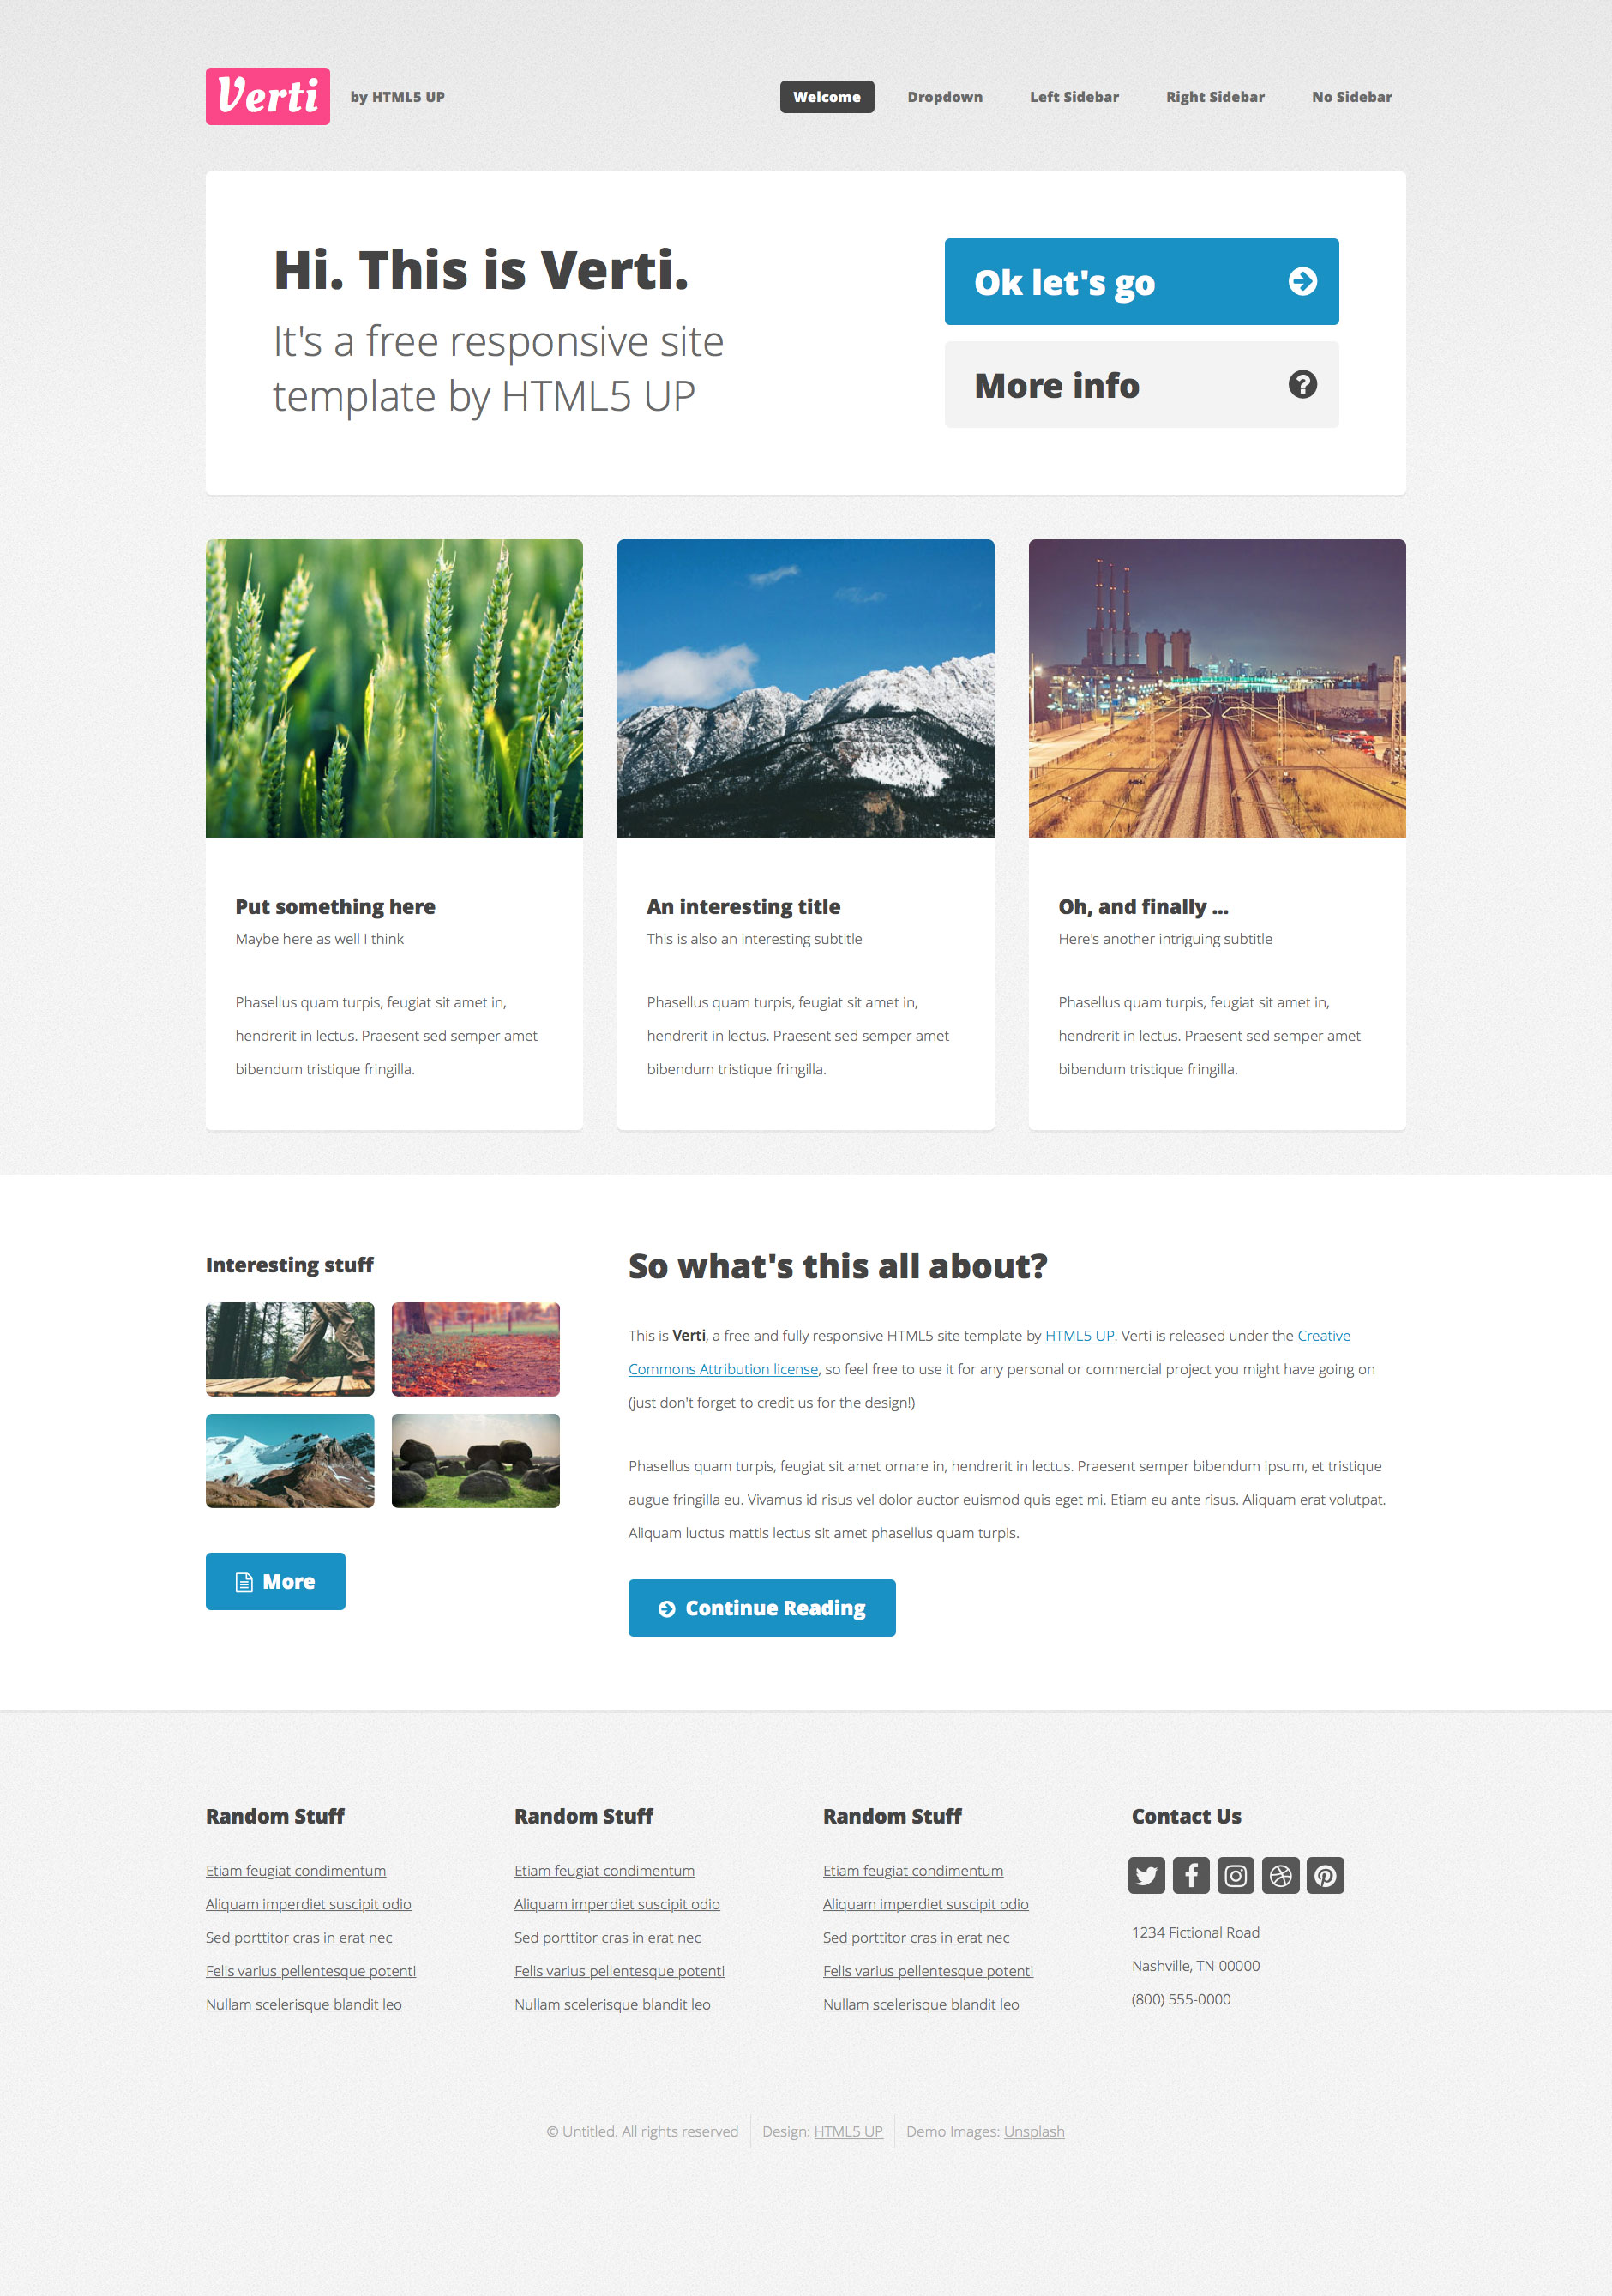 Verti is a free responsive HTML5 template. Perfectly suits for personal websites. It is a lightweight and fast loading template. Key features include Font Awesome icons cross-browser compatibility.